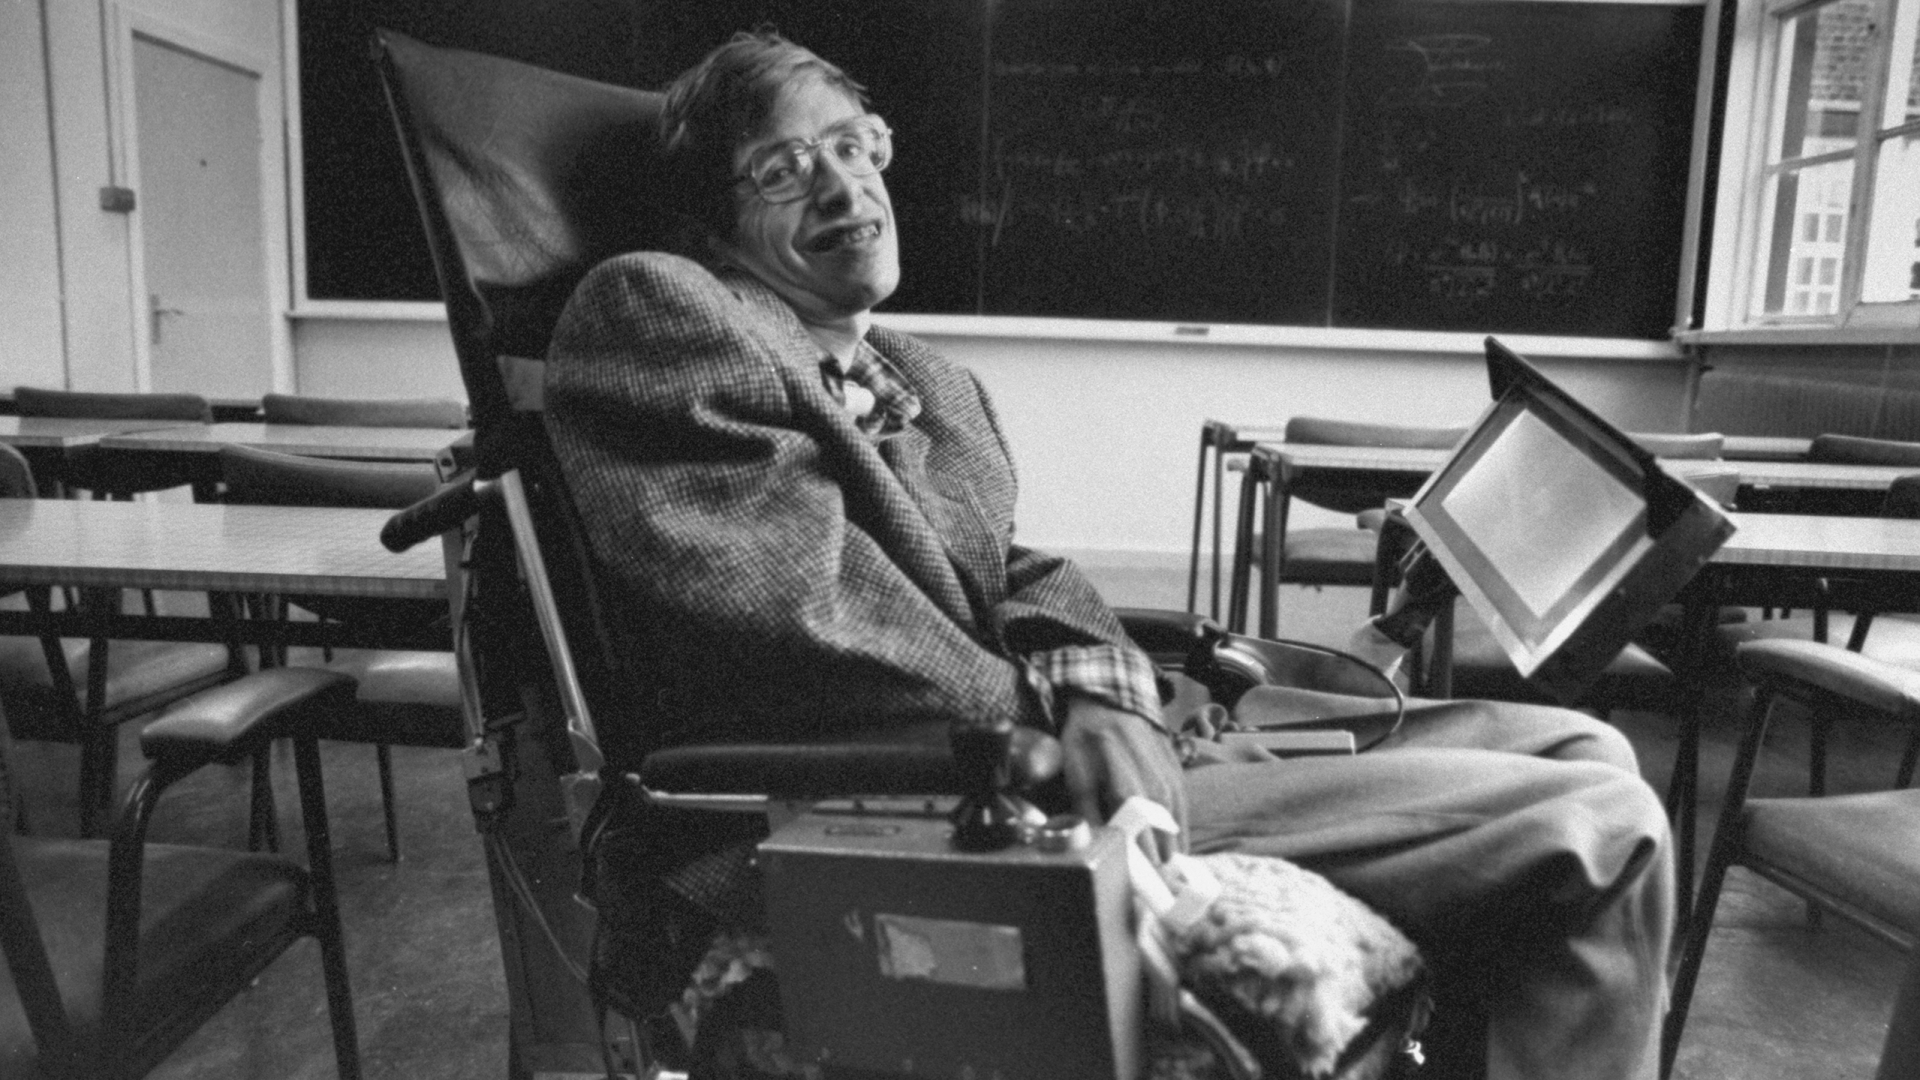 Cambridge Univ. physicist & author Prof. Stephen Hawkings, wheelchair bound due to ALS (amyotrophic lateral sclerosis, aka Lou Gehrig's disease), inside a lecture hall w. math equations on blackboard behind him.  (Photo by Terry Smith/The LIFE Images Collection/Getty Images)